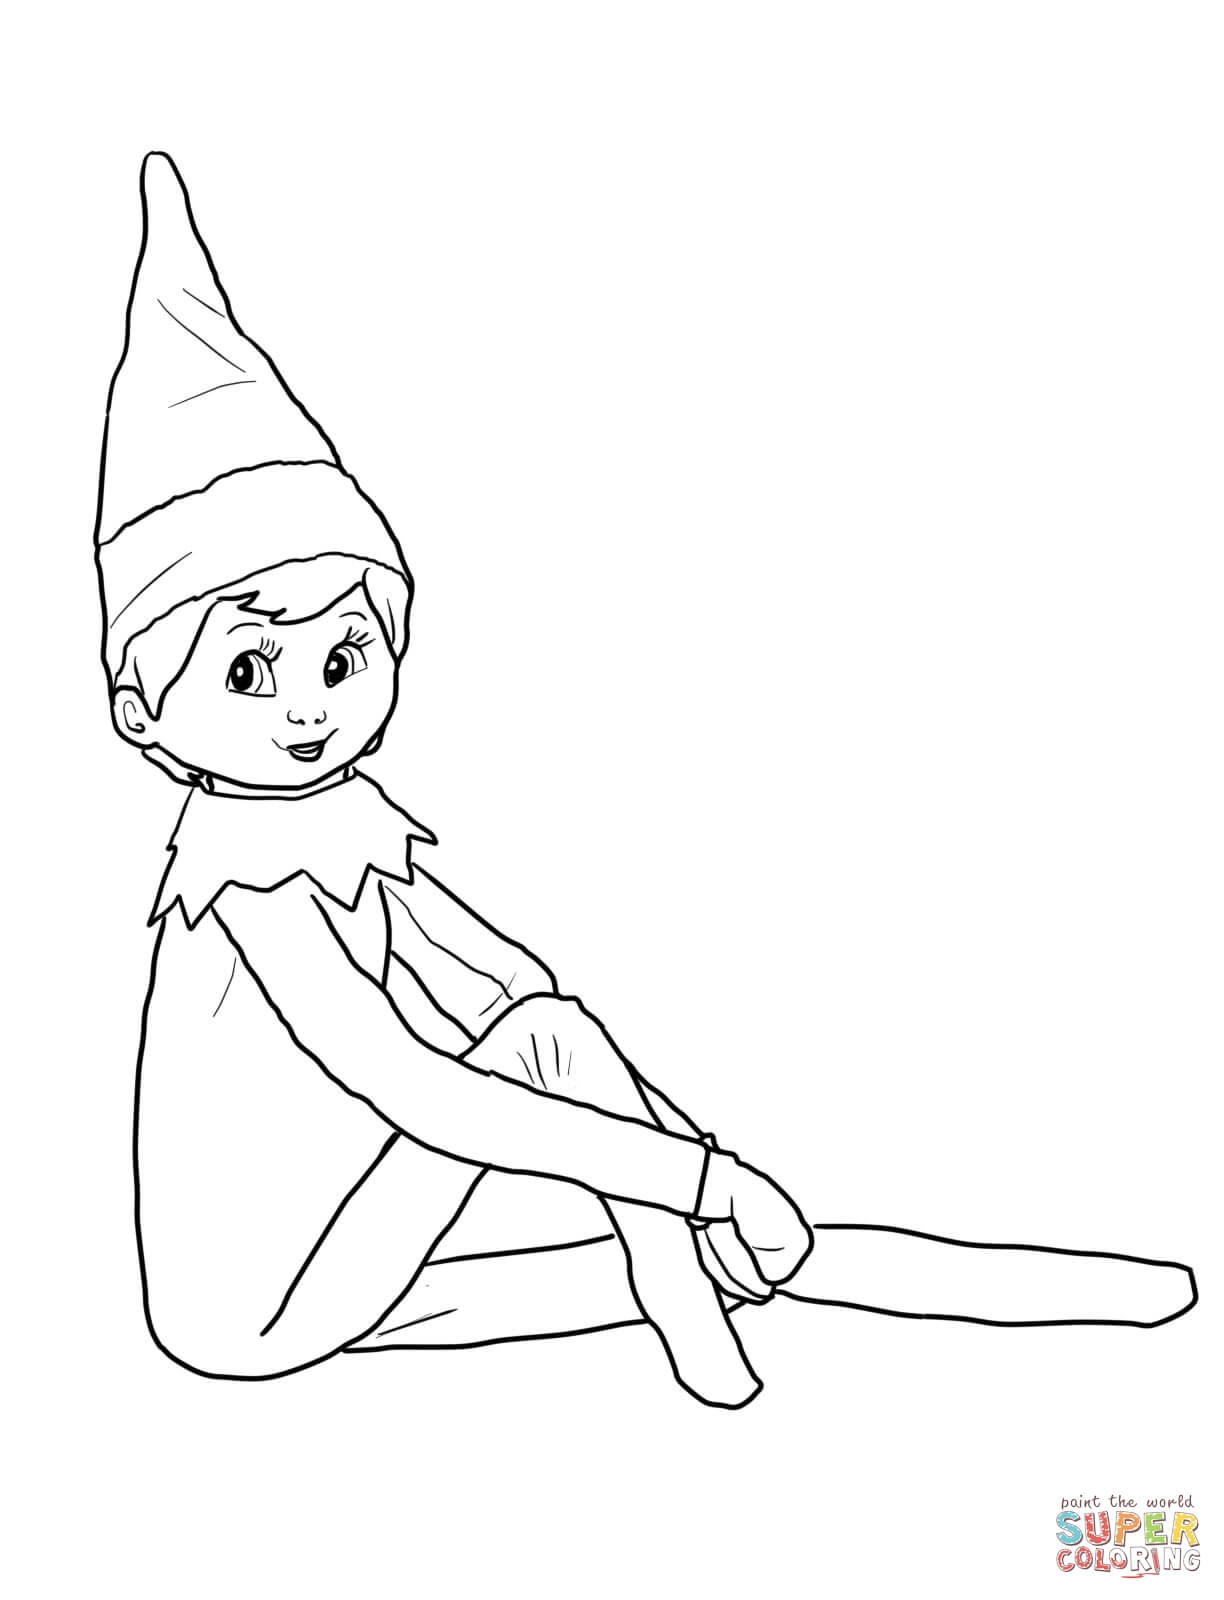 christmas-elf-coloring-pages-for-adults-with-printable-free-books-5bfda5f0f3888